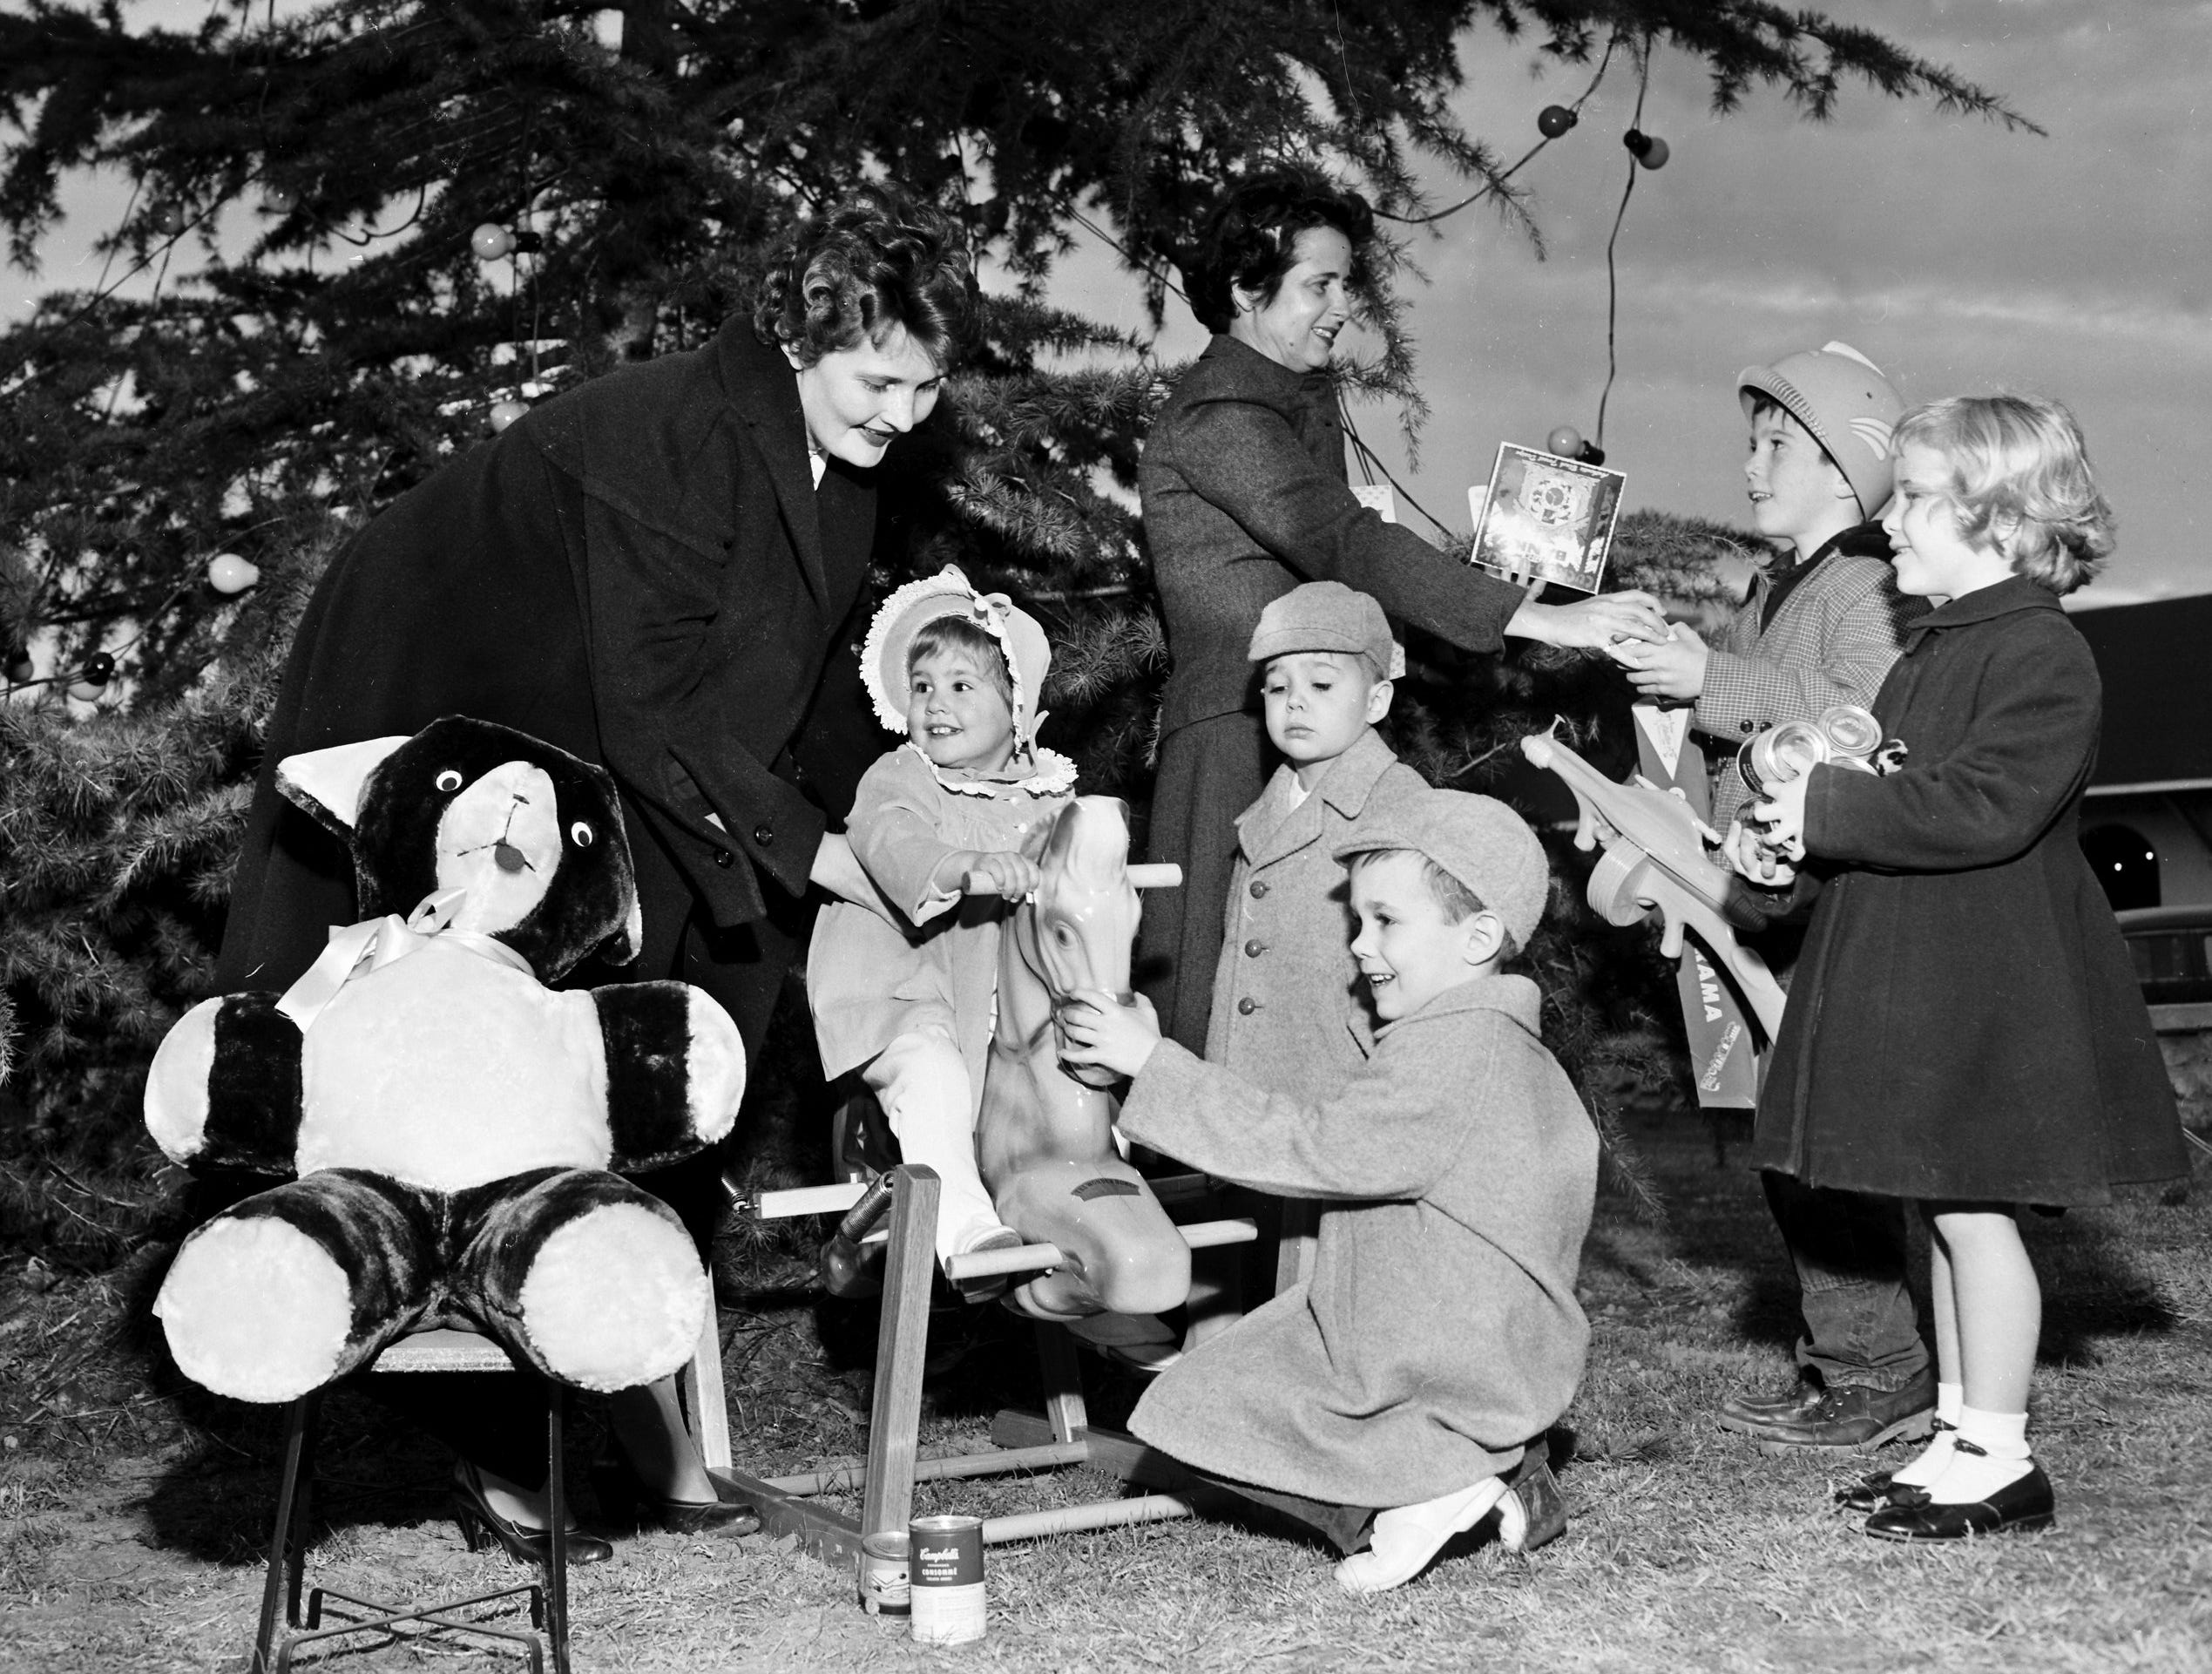 Several children visited Thomas A. Edison Park at Madison and Lauderdale on 18 Dec 1954, including (From Left) Virginia Campbell, Snowden Todd, Hardy Todd III, Frank Crump III and Roder Crump.  They were there to see the Children's Christmas Tree, which was to be dedicated the following day.  The children were accompanied by Mrs. George Campbell (Left) and Mrs. Frank Crump Jr., president of the Junior League of Memphis Garden Club, sponsor of the tree.